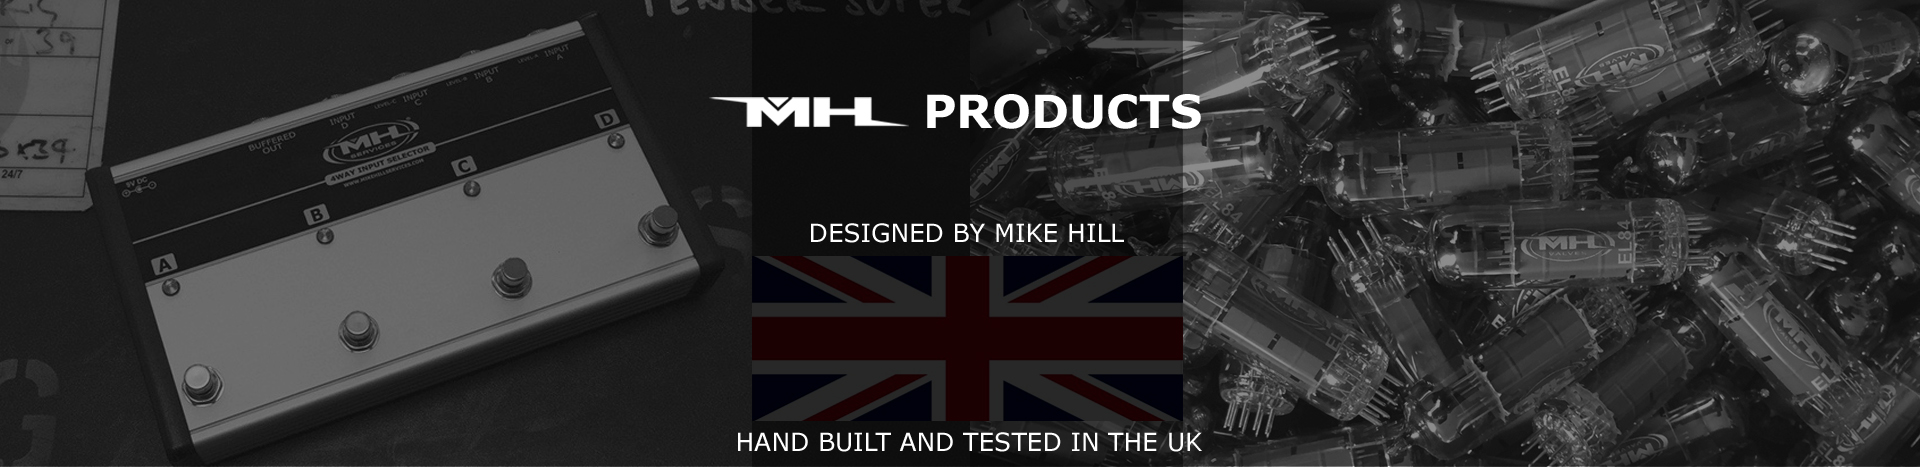 MH Products Banner